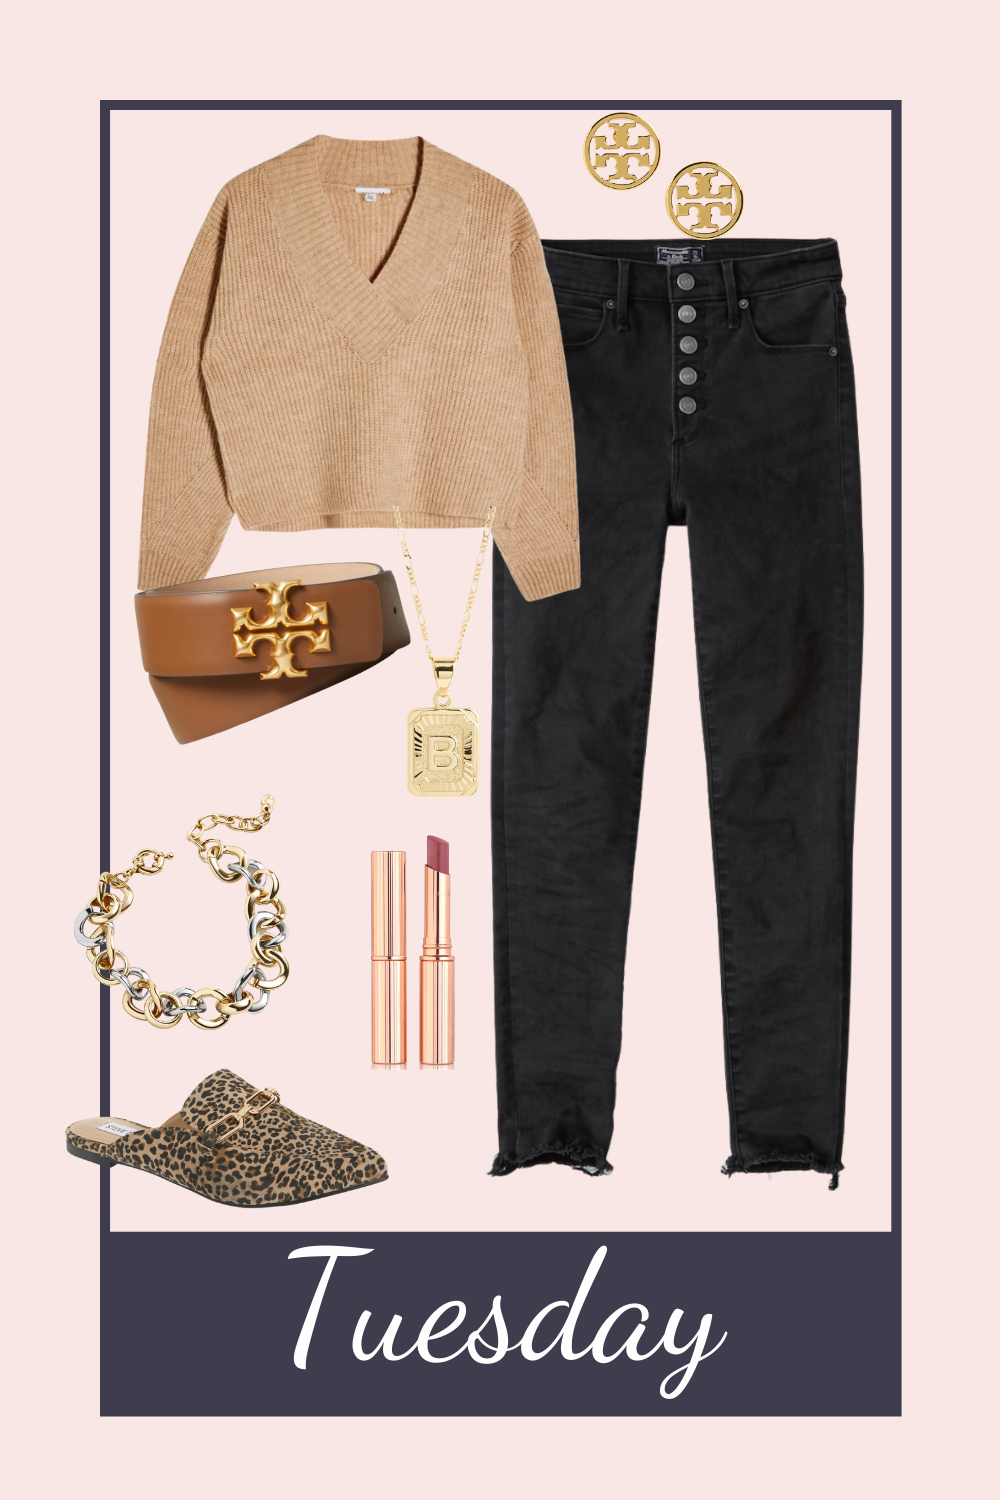 work from home. mom jeans. date night outfit ideas. teacher outfit ideas. teacher outfit inspiration. teacher wardrobe